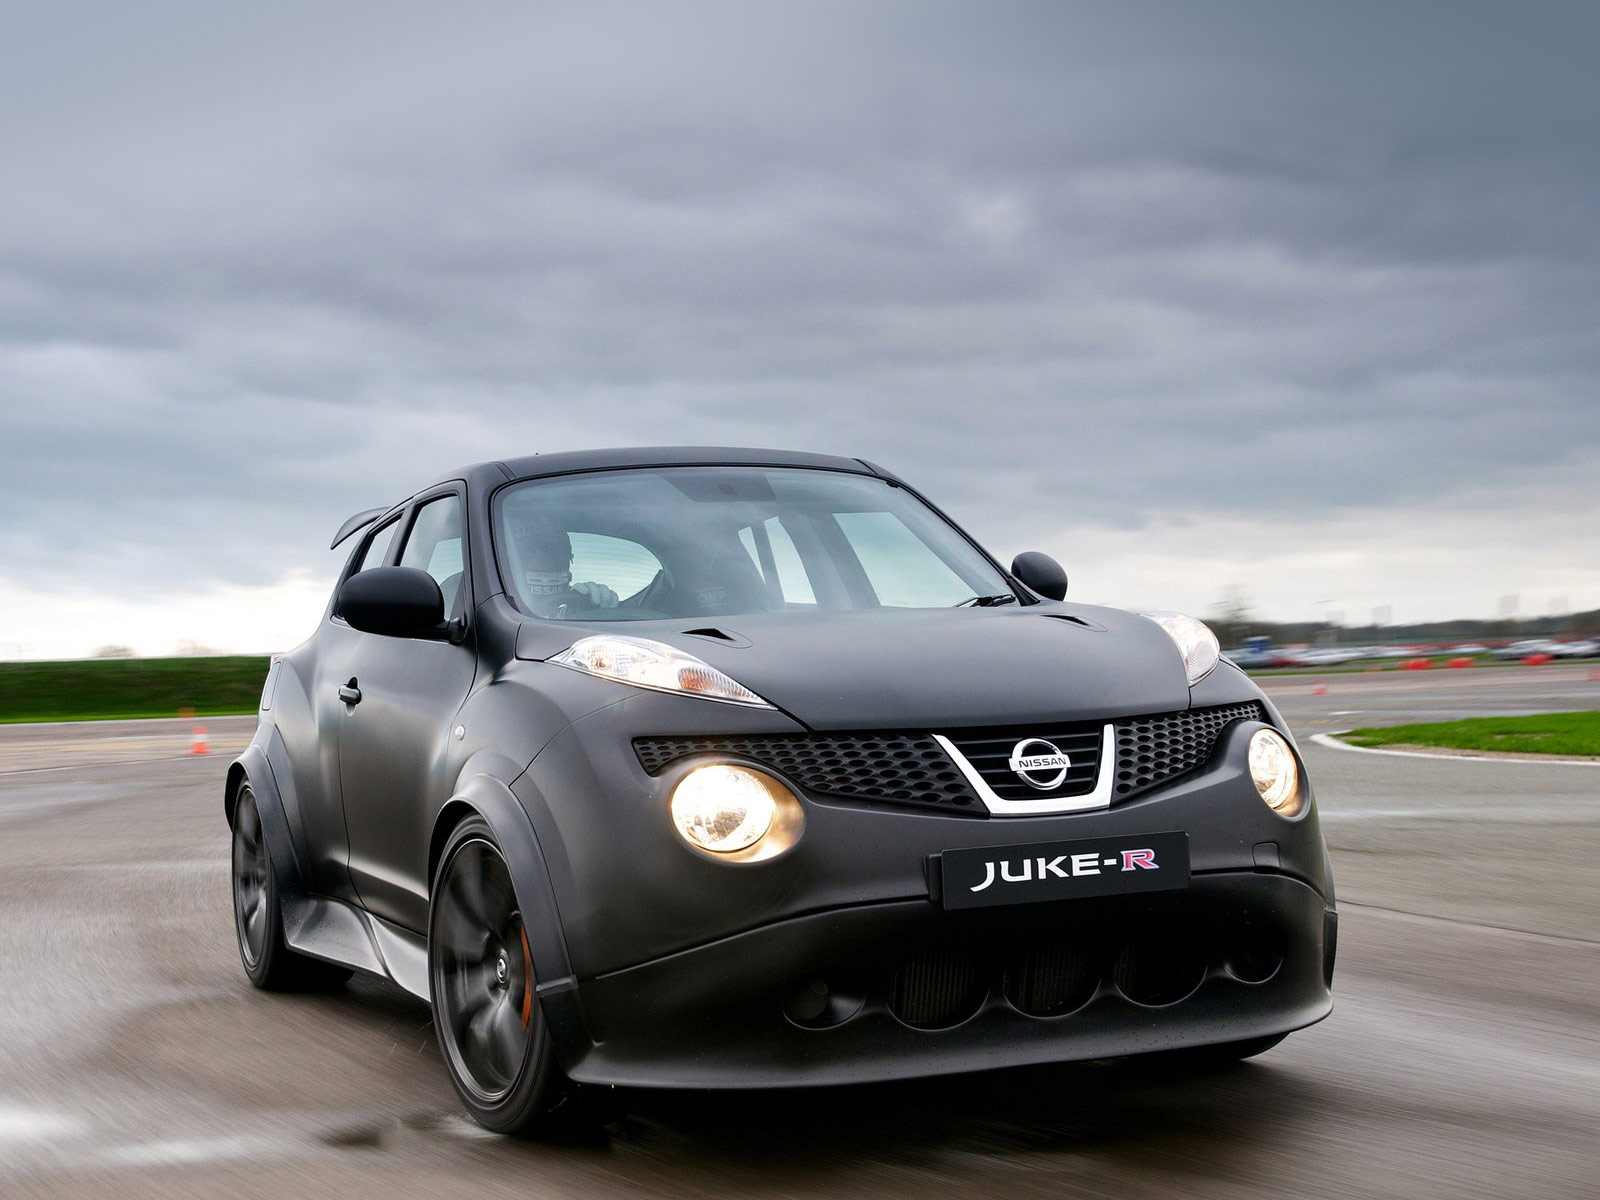 2011 Nissan Juke R Concept Japanese Car Photos